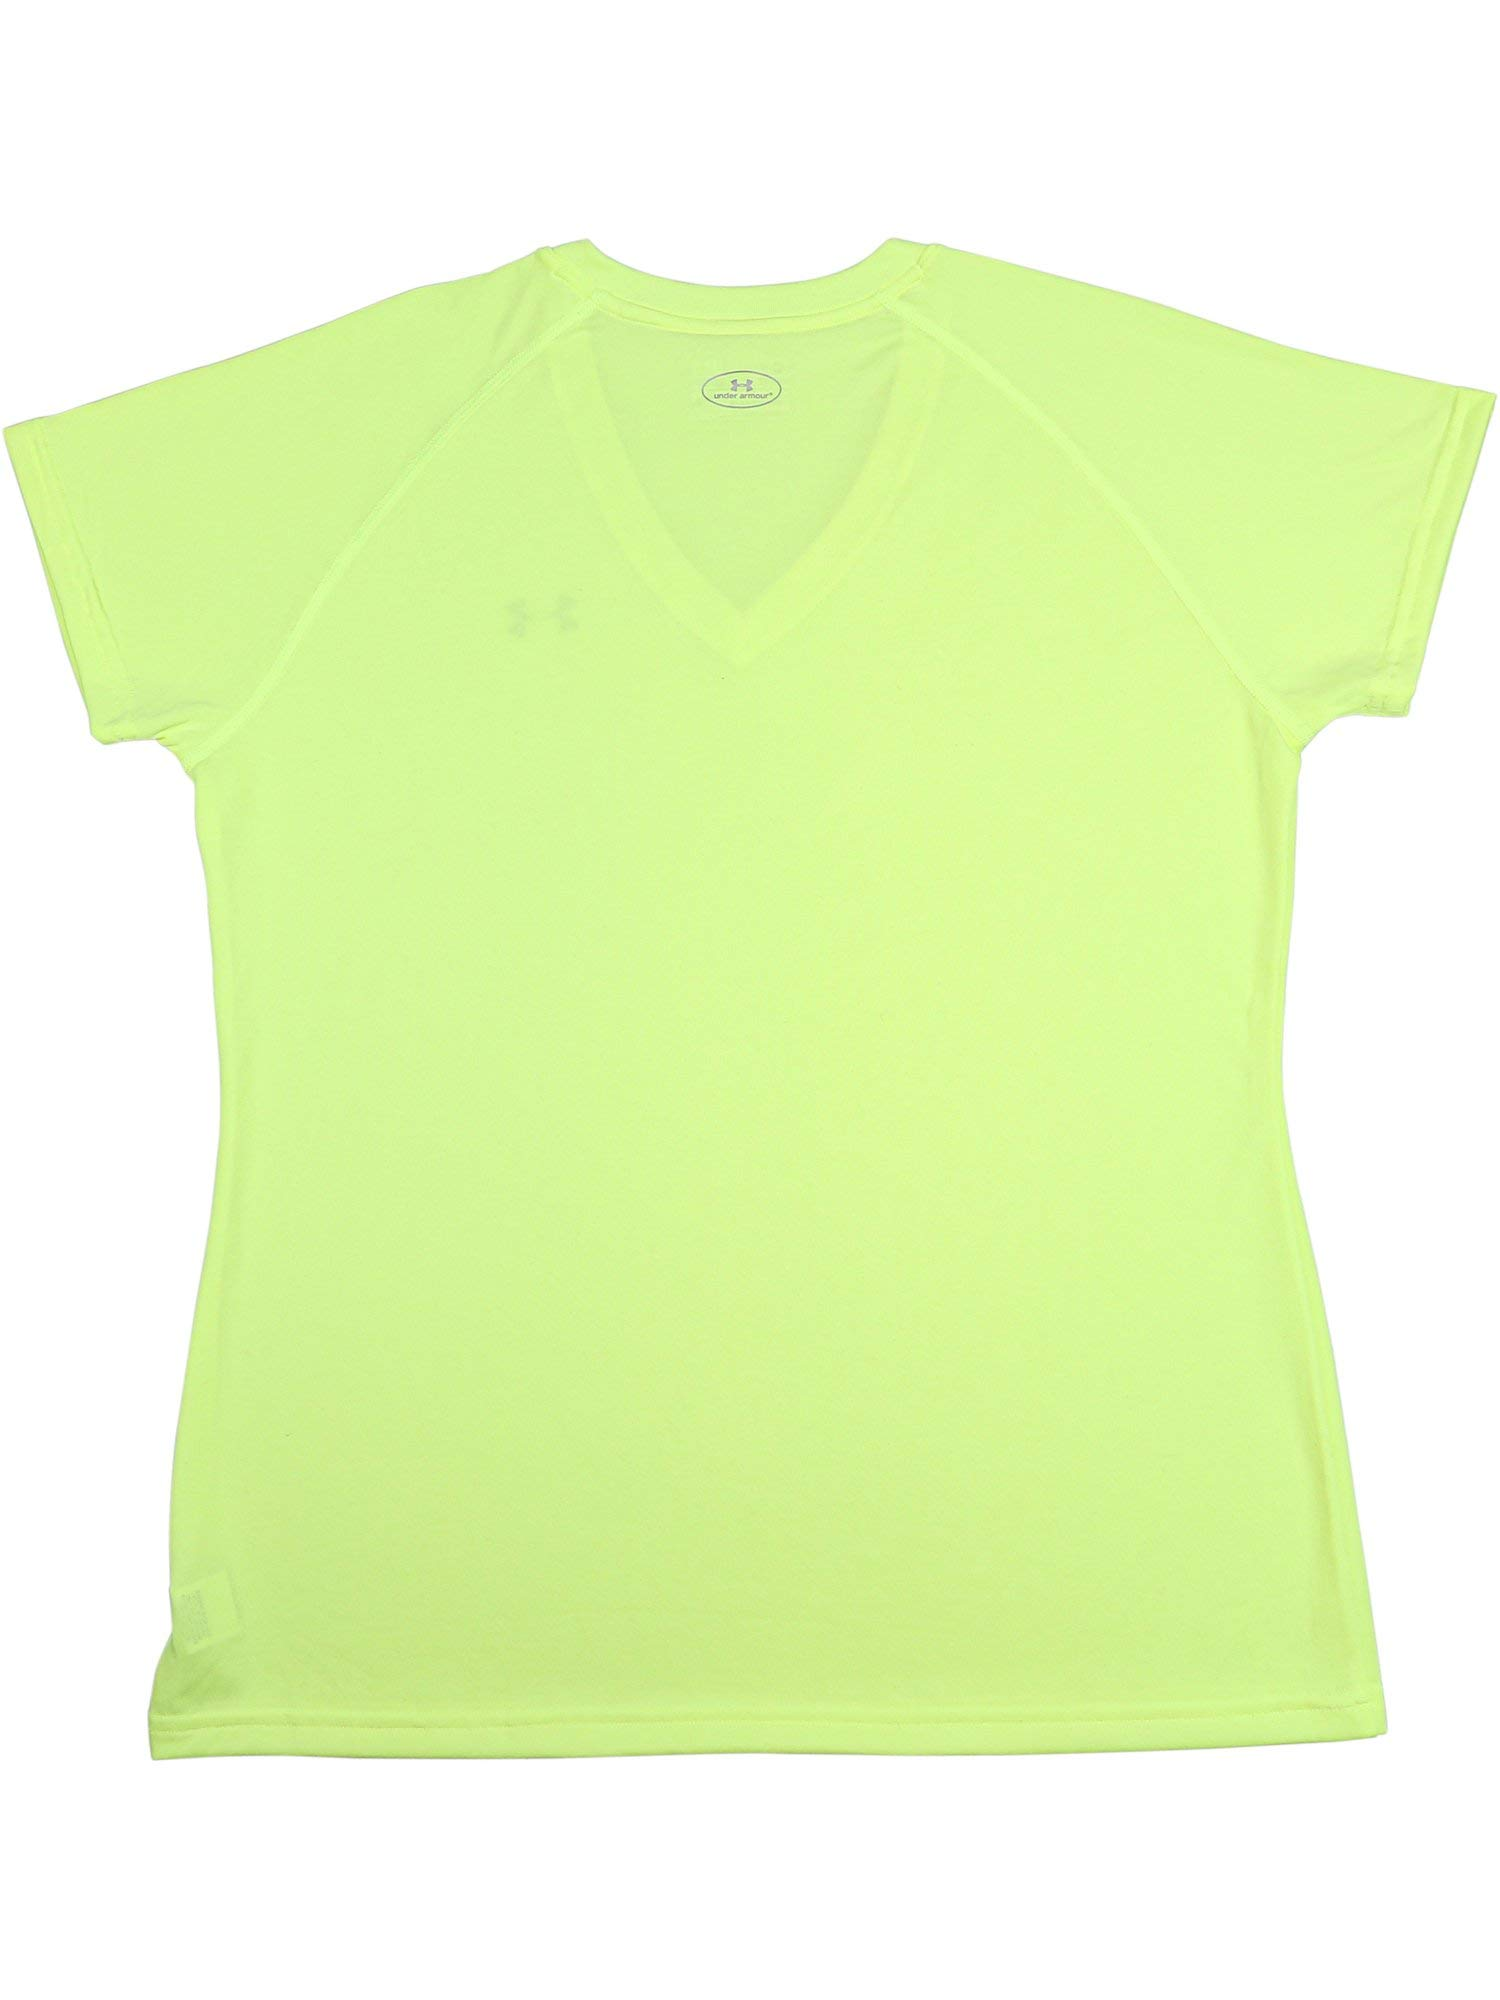 Under Armour Women's Taxi Tech V-Neck Jersey Short Sleeve Soccer - XS by Under Armour (Image #3)